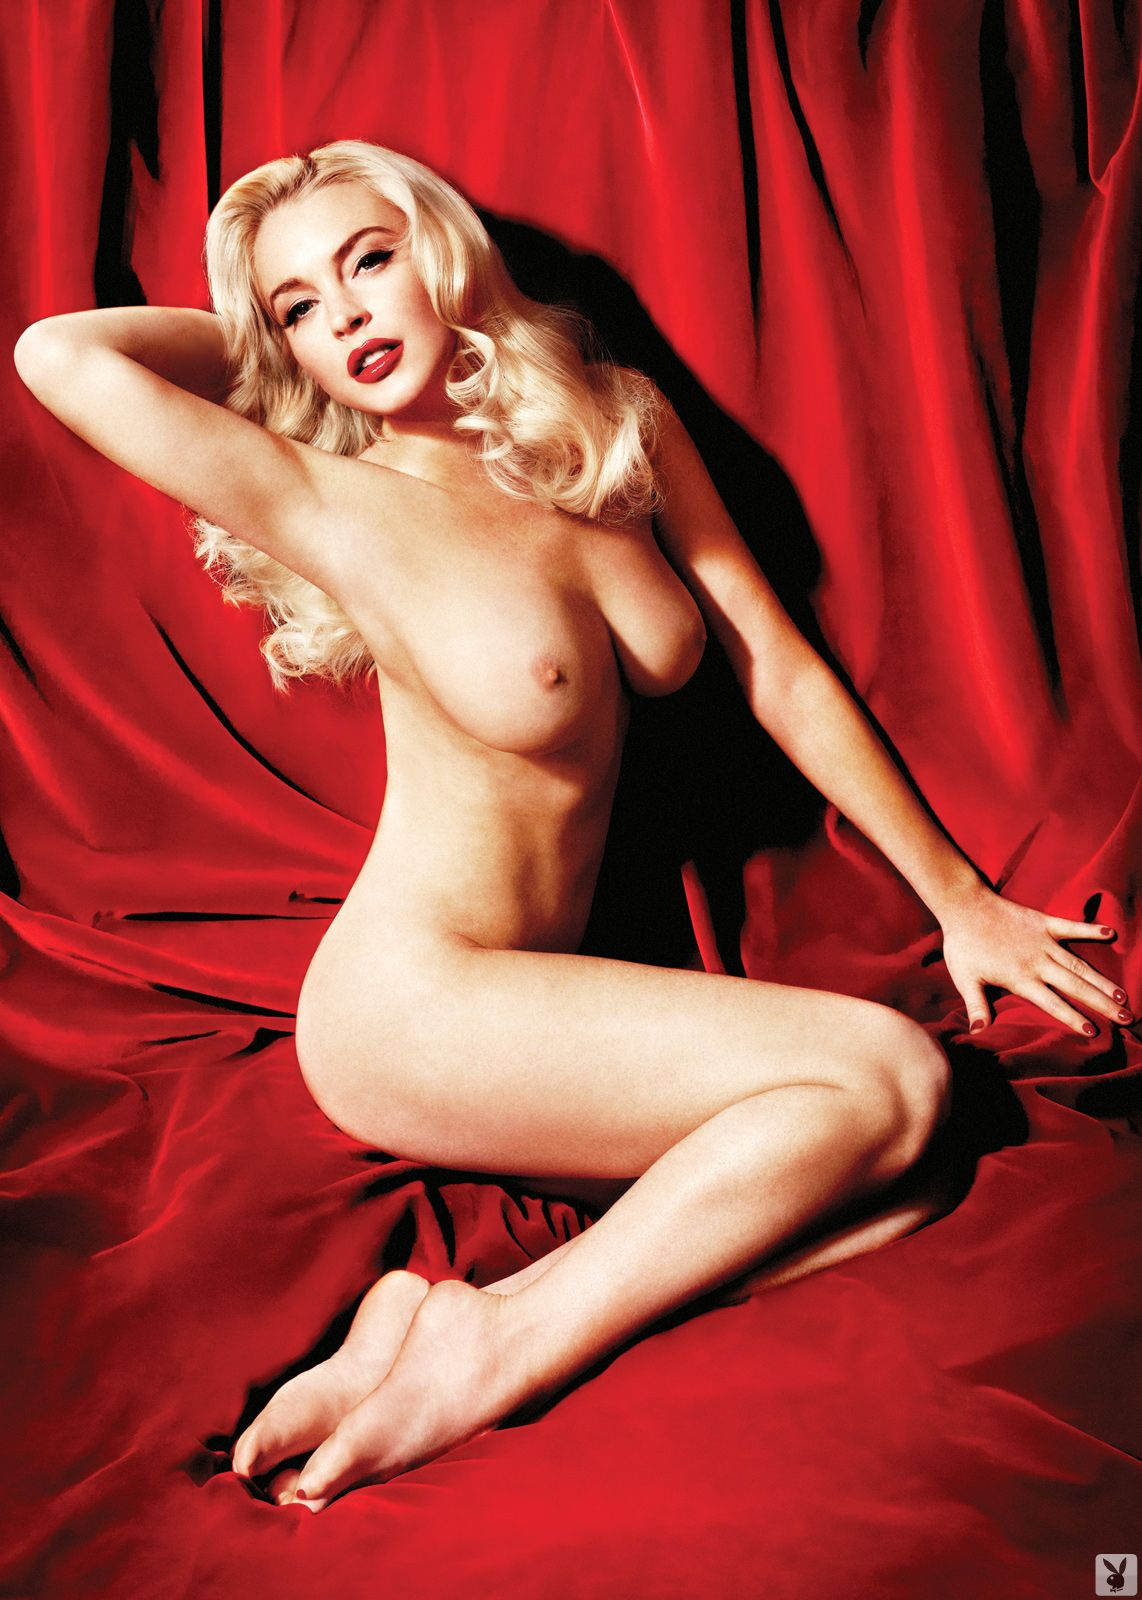 Lindsay lohan in nude marilyn monroe photo shoot